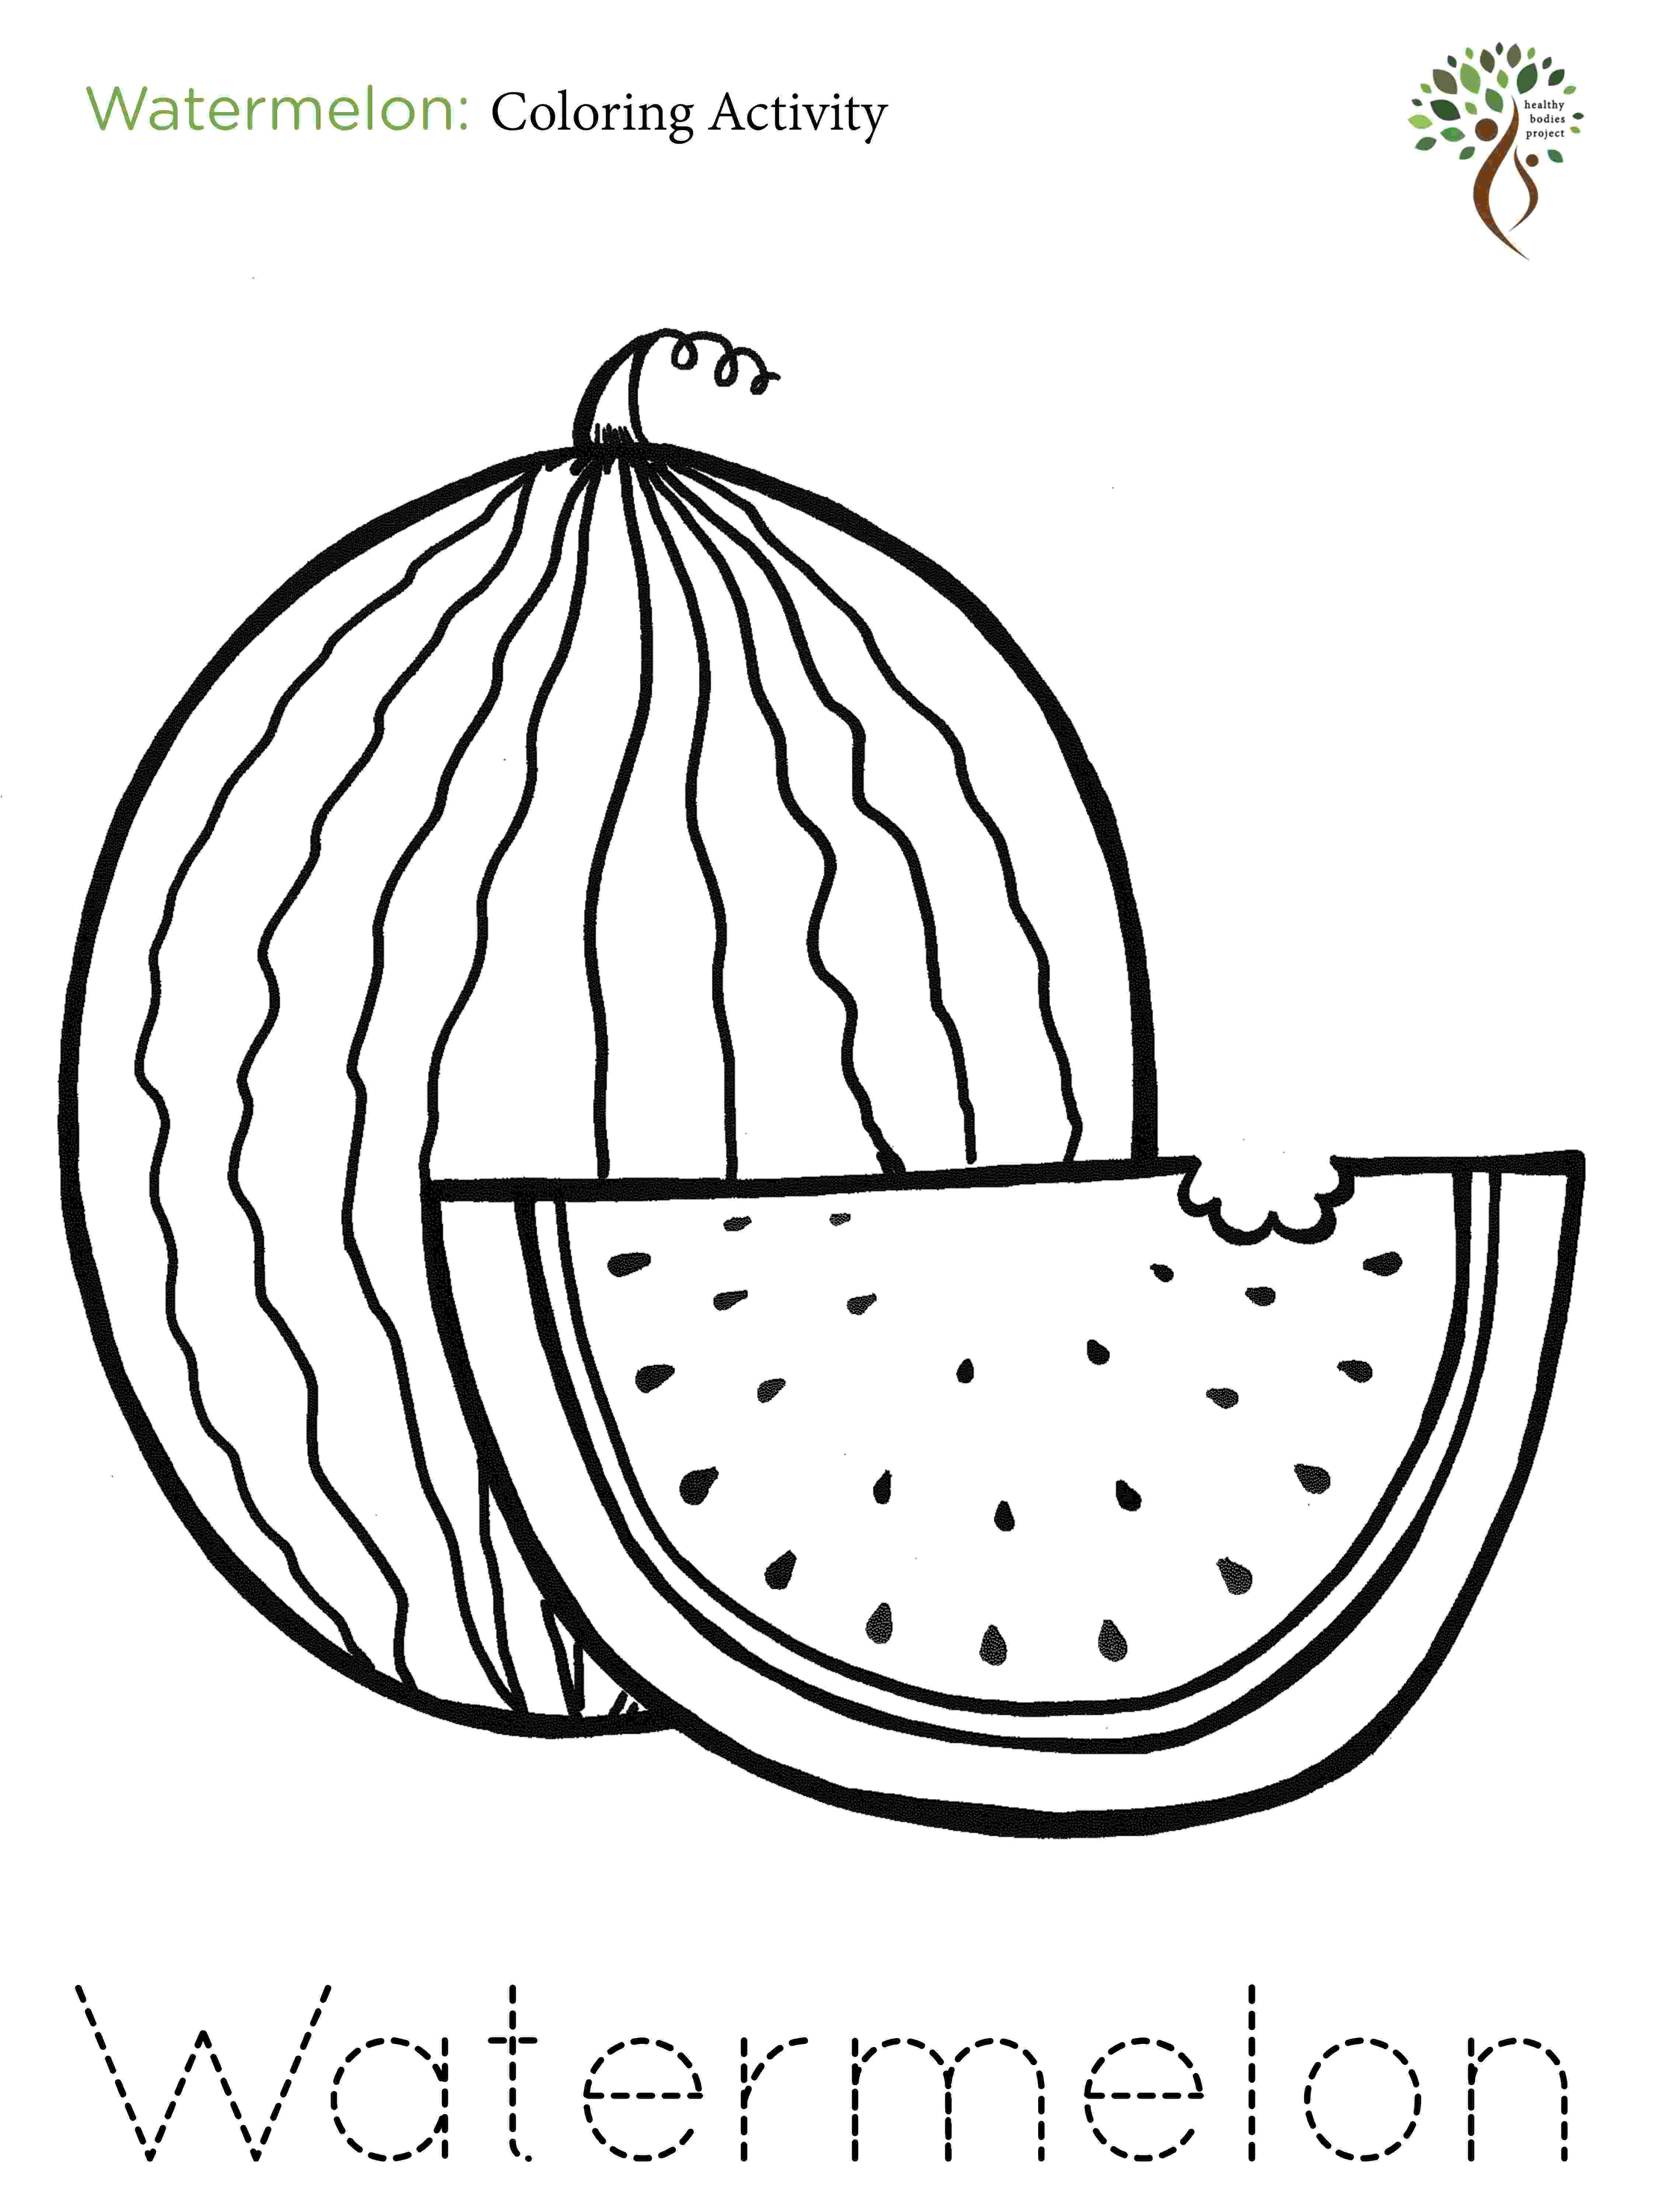 watermelon coloring sheets watermelon coloring pages to download and print for free sheets coloring watermelon